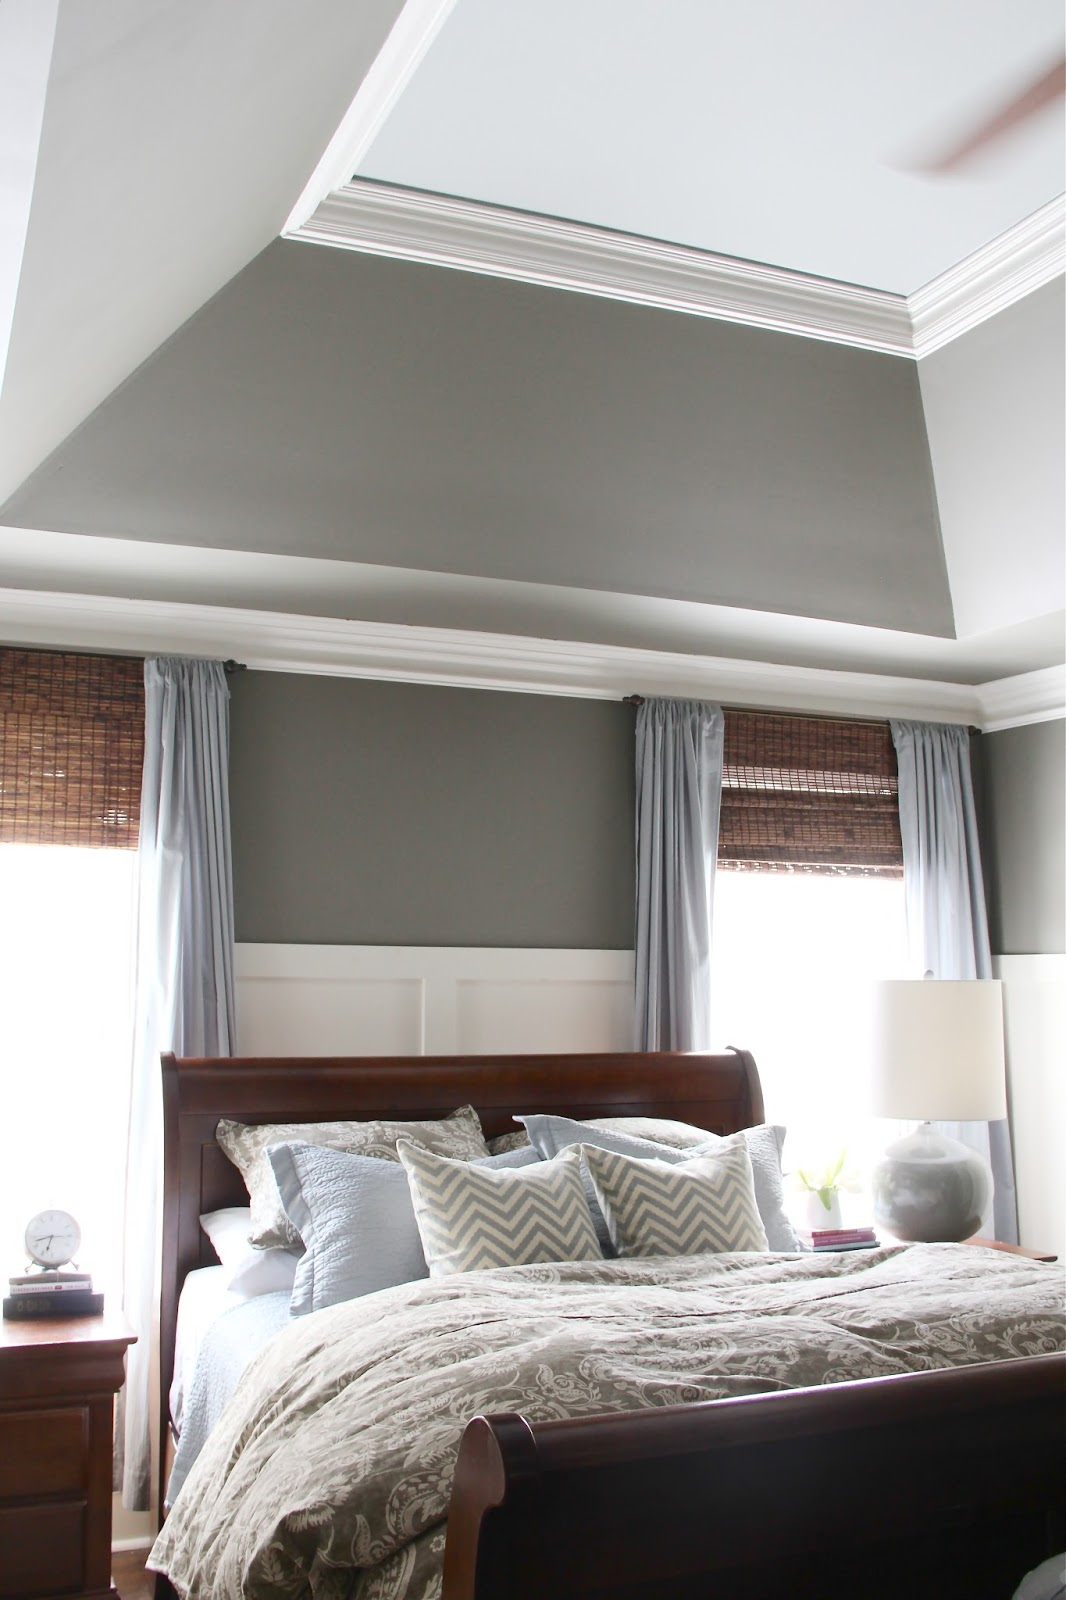 Master bedroom paint colors - love the blue ceiling (Mineral Deposit by SW)